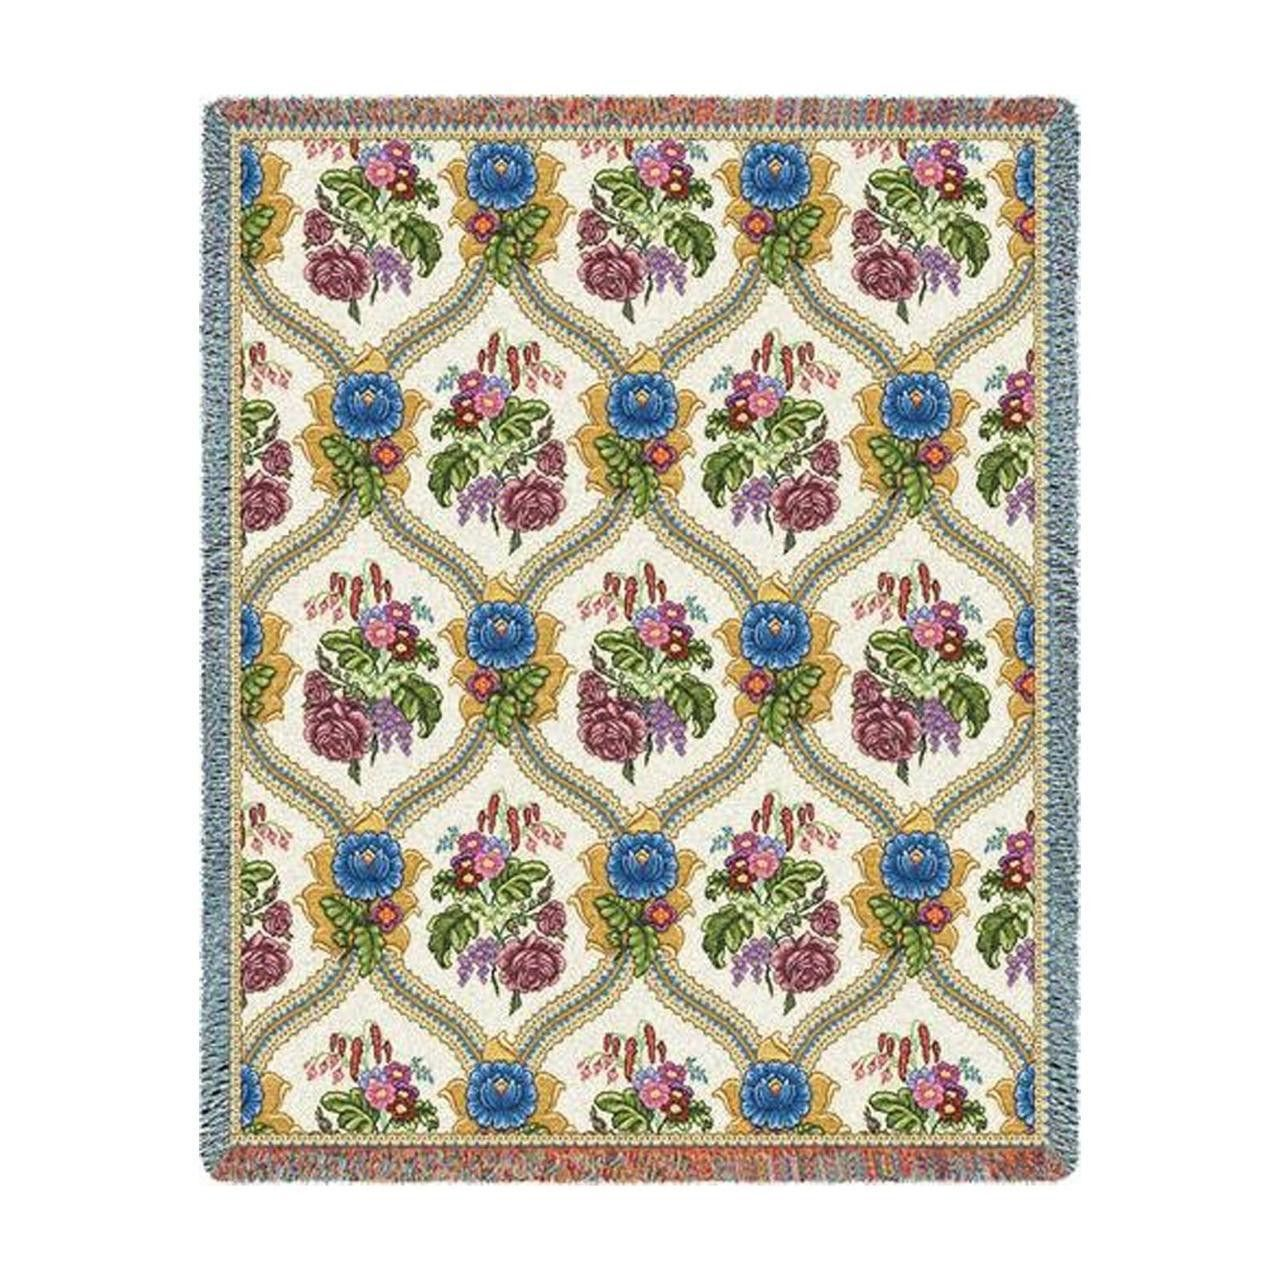 Bouquets of Flowers Art Tapestry Throw